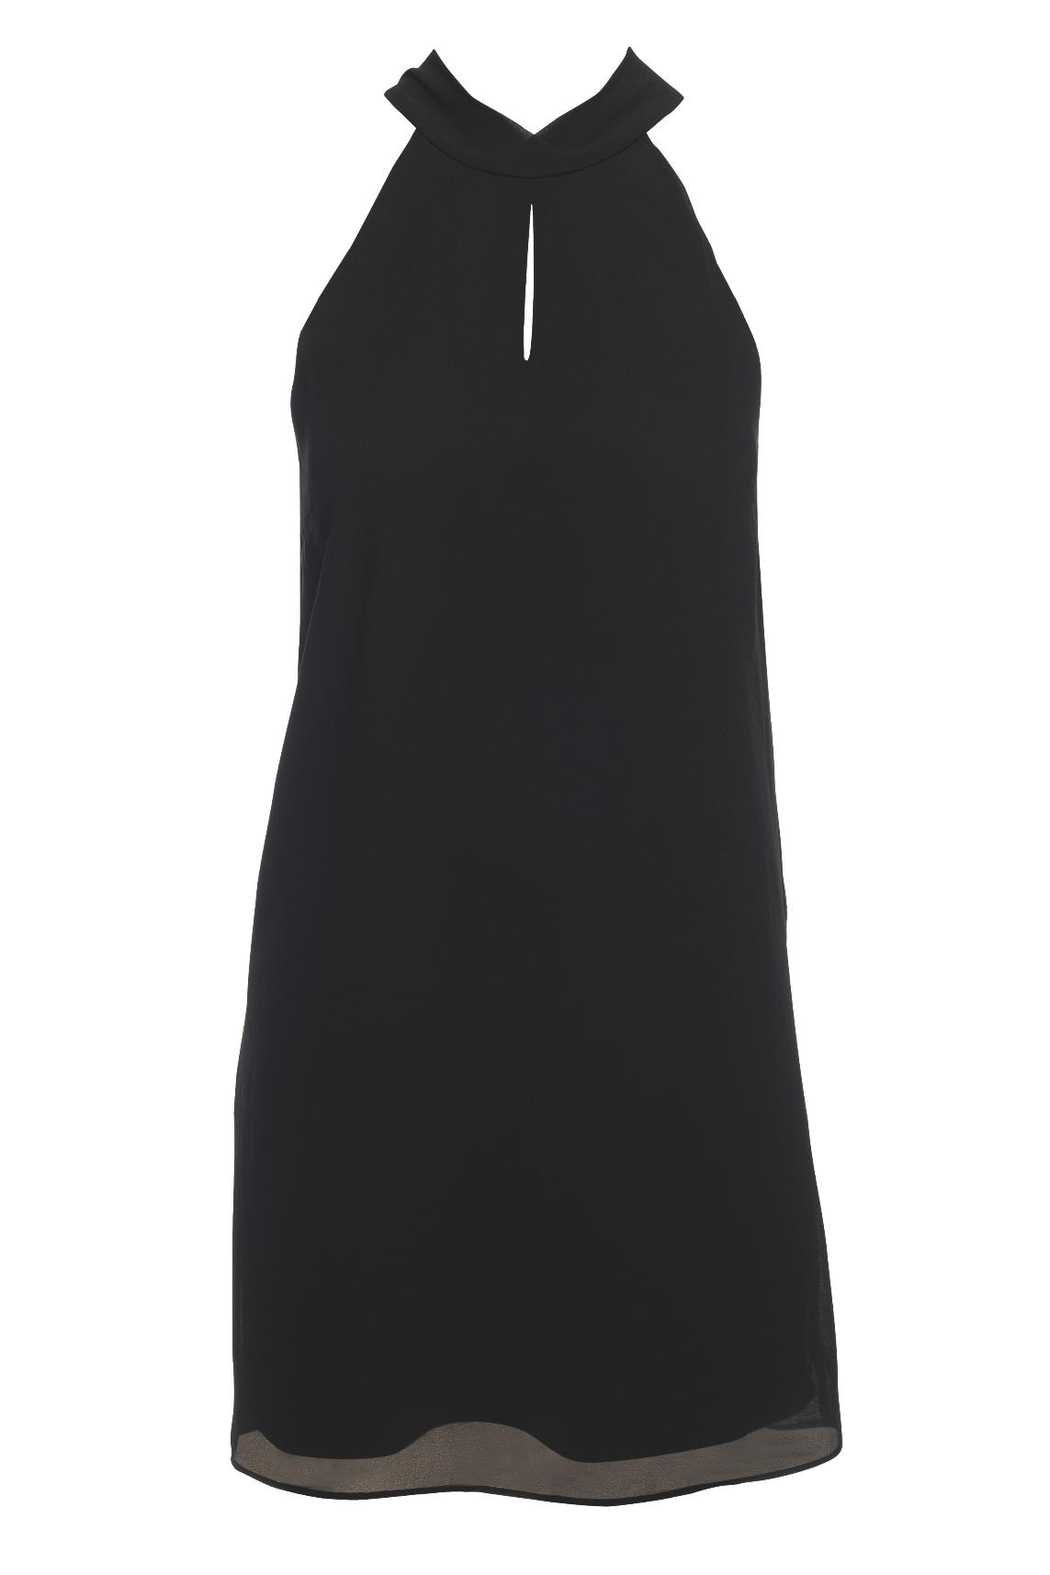 Lost April Kate Keyhole Dress - Front Cropped Image